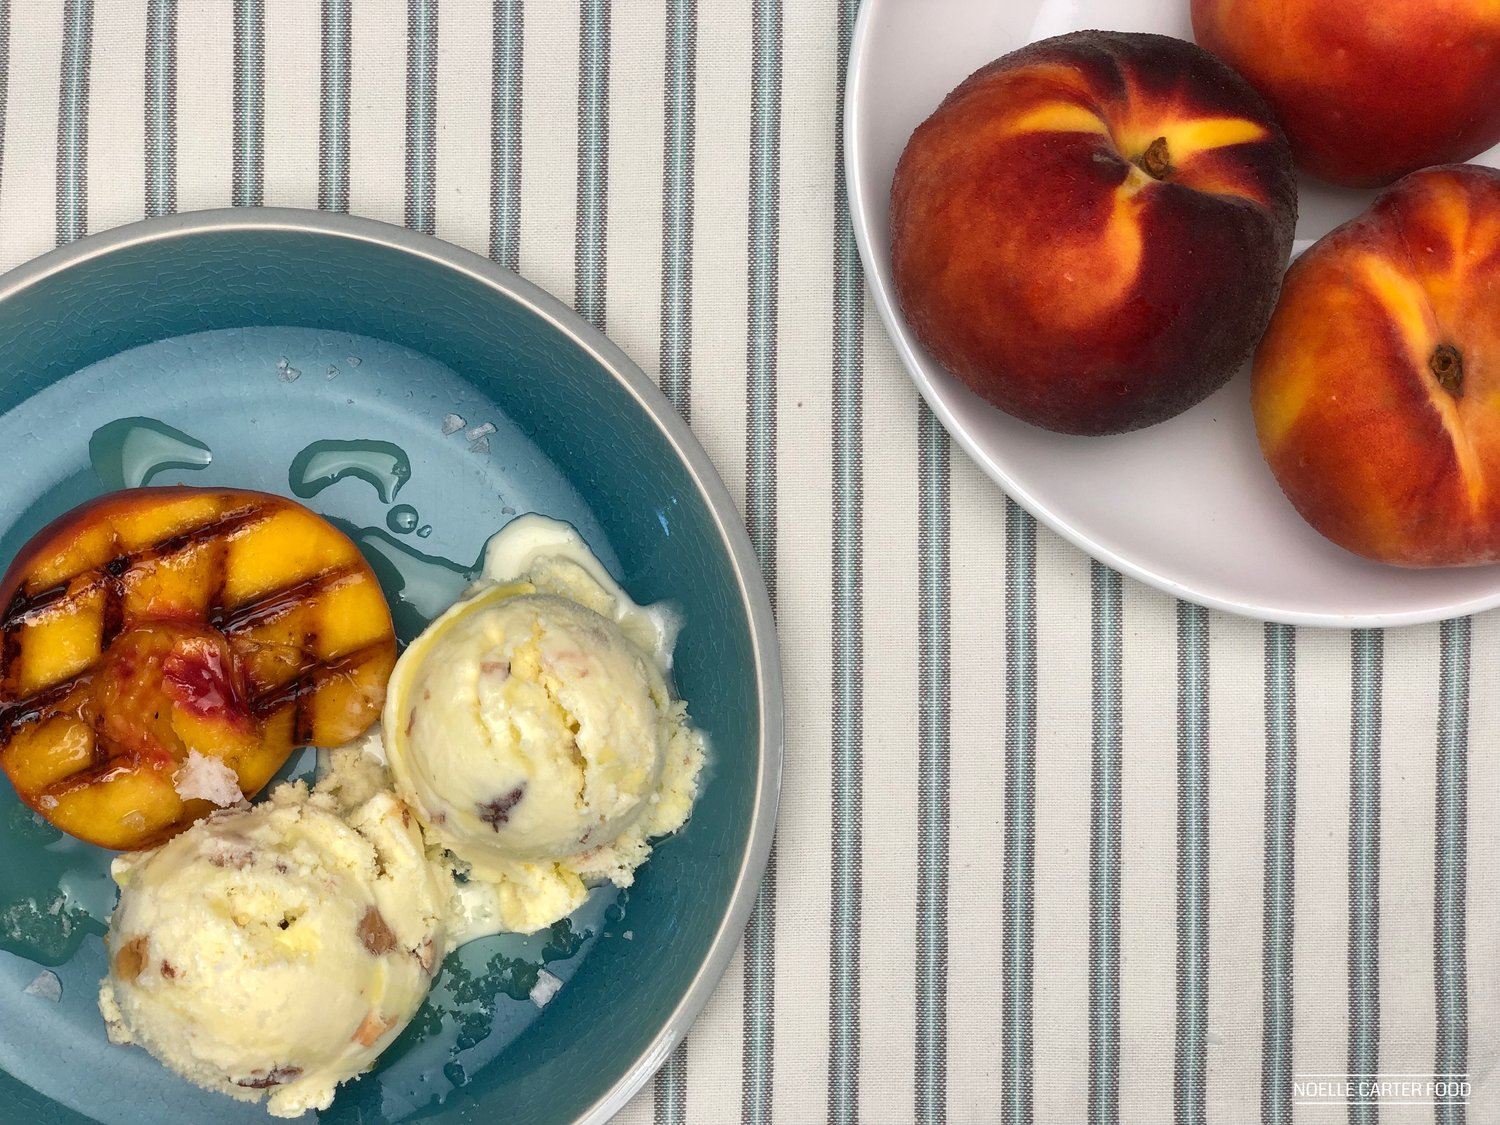 OLIVE OIL AND ROASTED ALMOND ICE CREAM